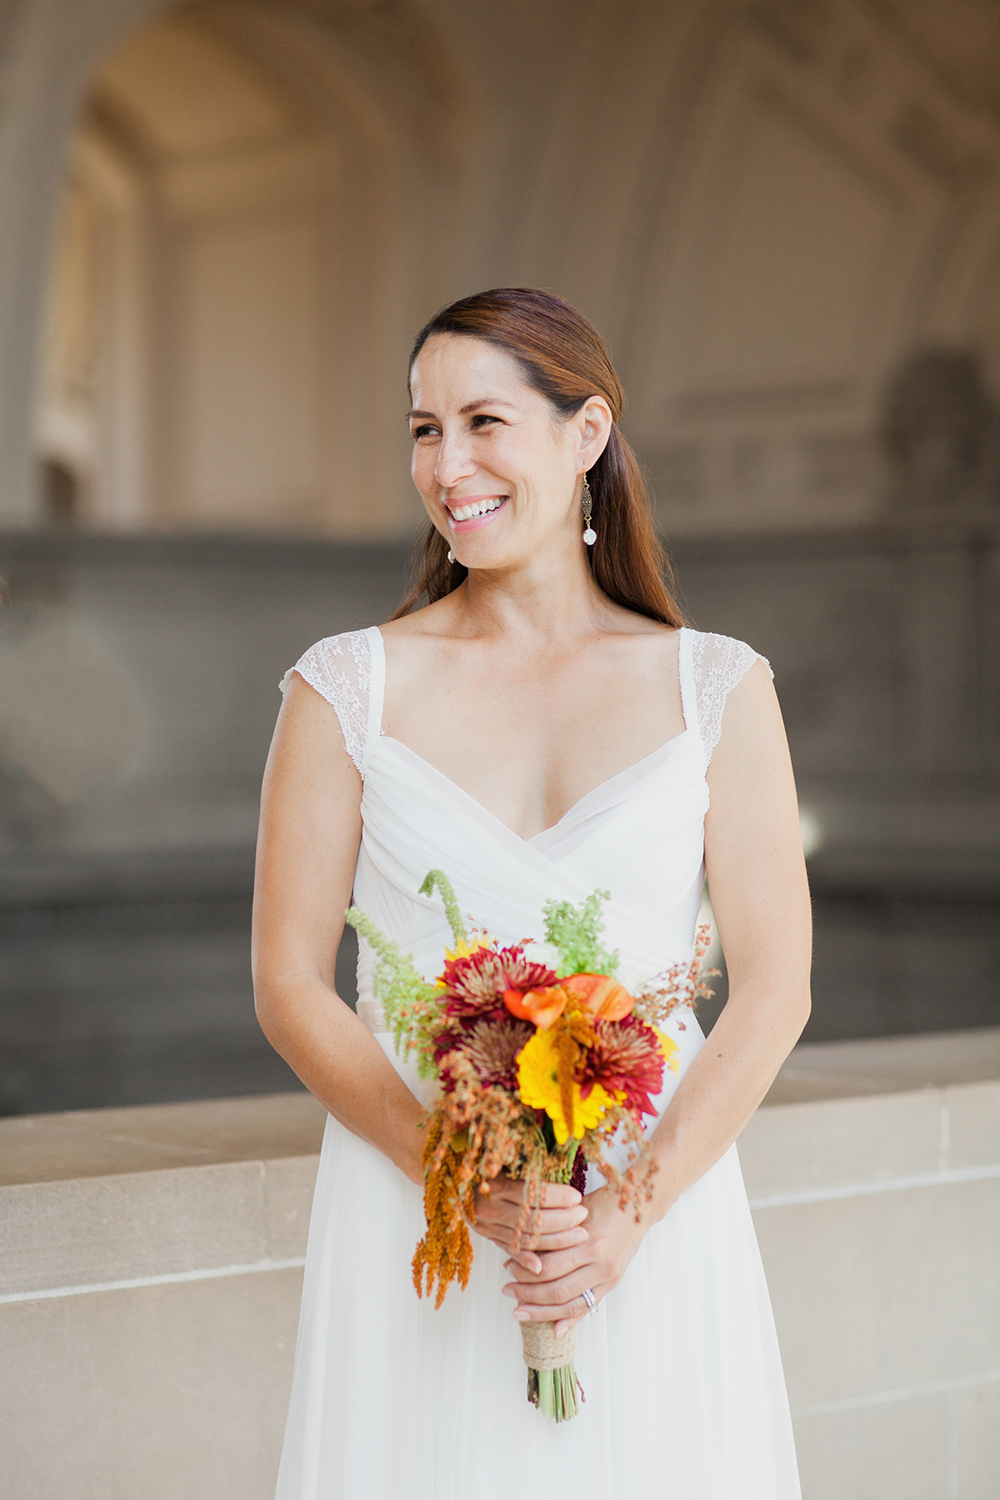 Portrait of bride during her wedding in San Francisco City Hall.